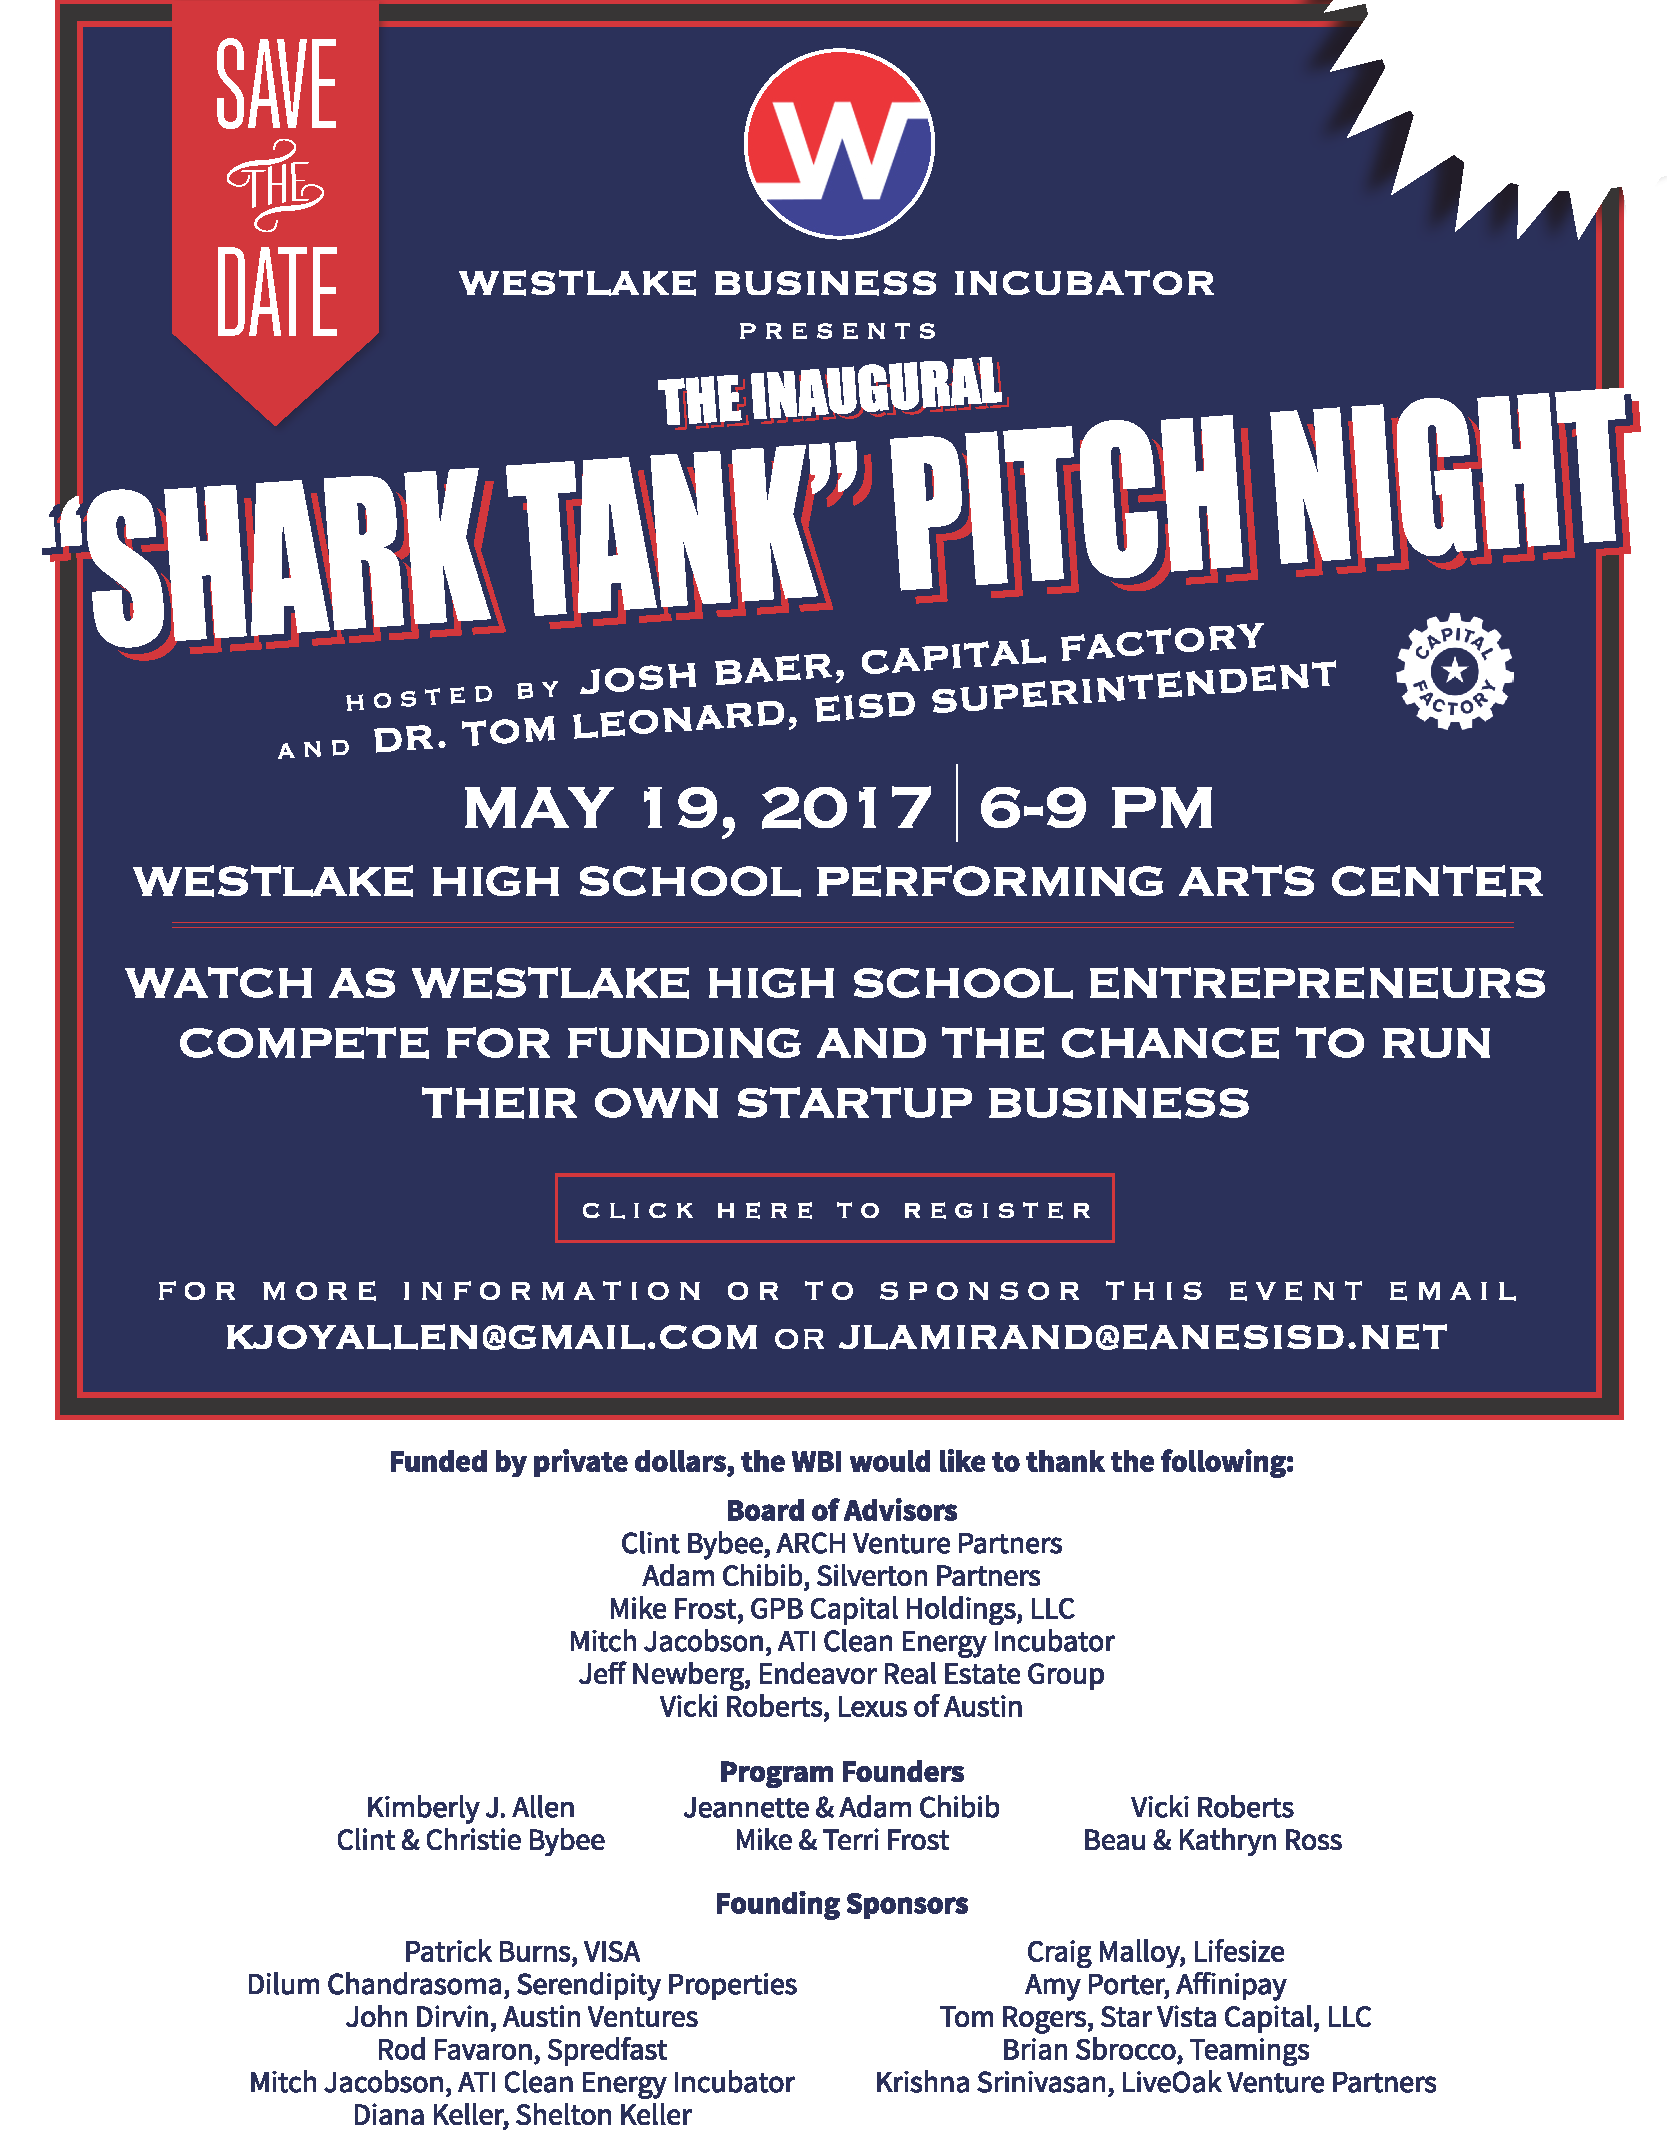 Westlake-HS-Business-Incubator-Pitch-Night-(1).png